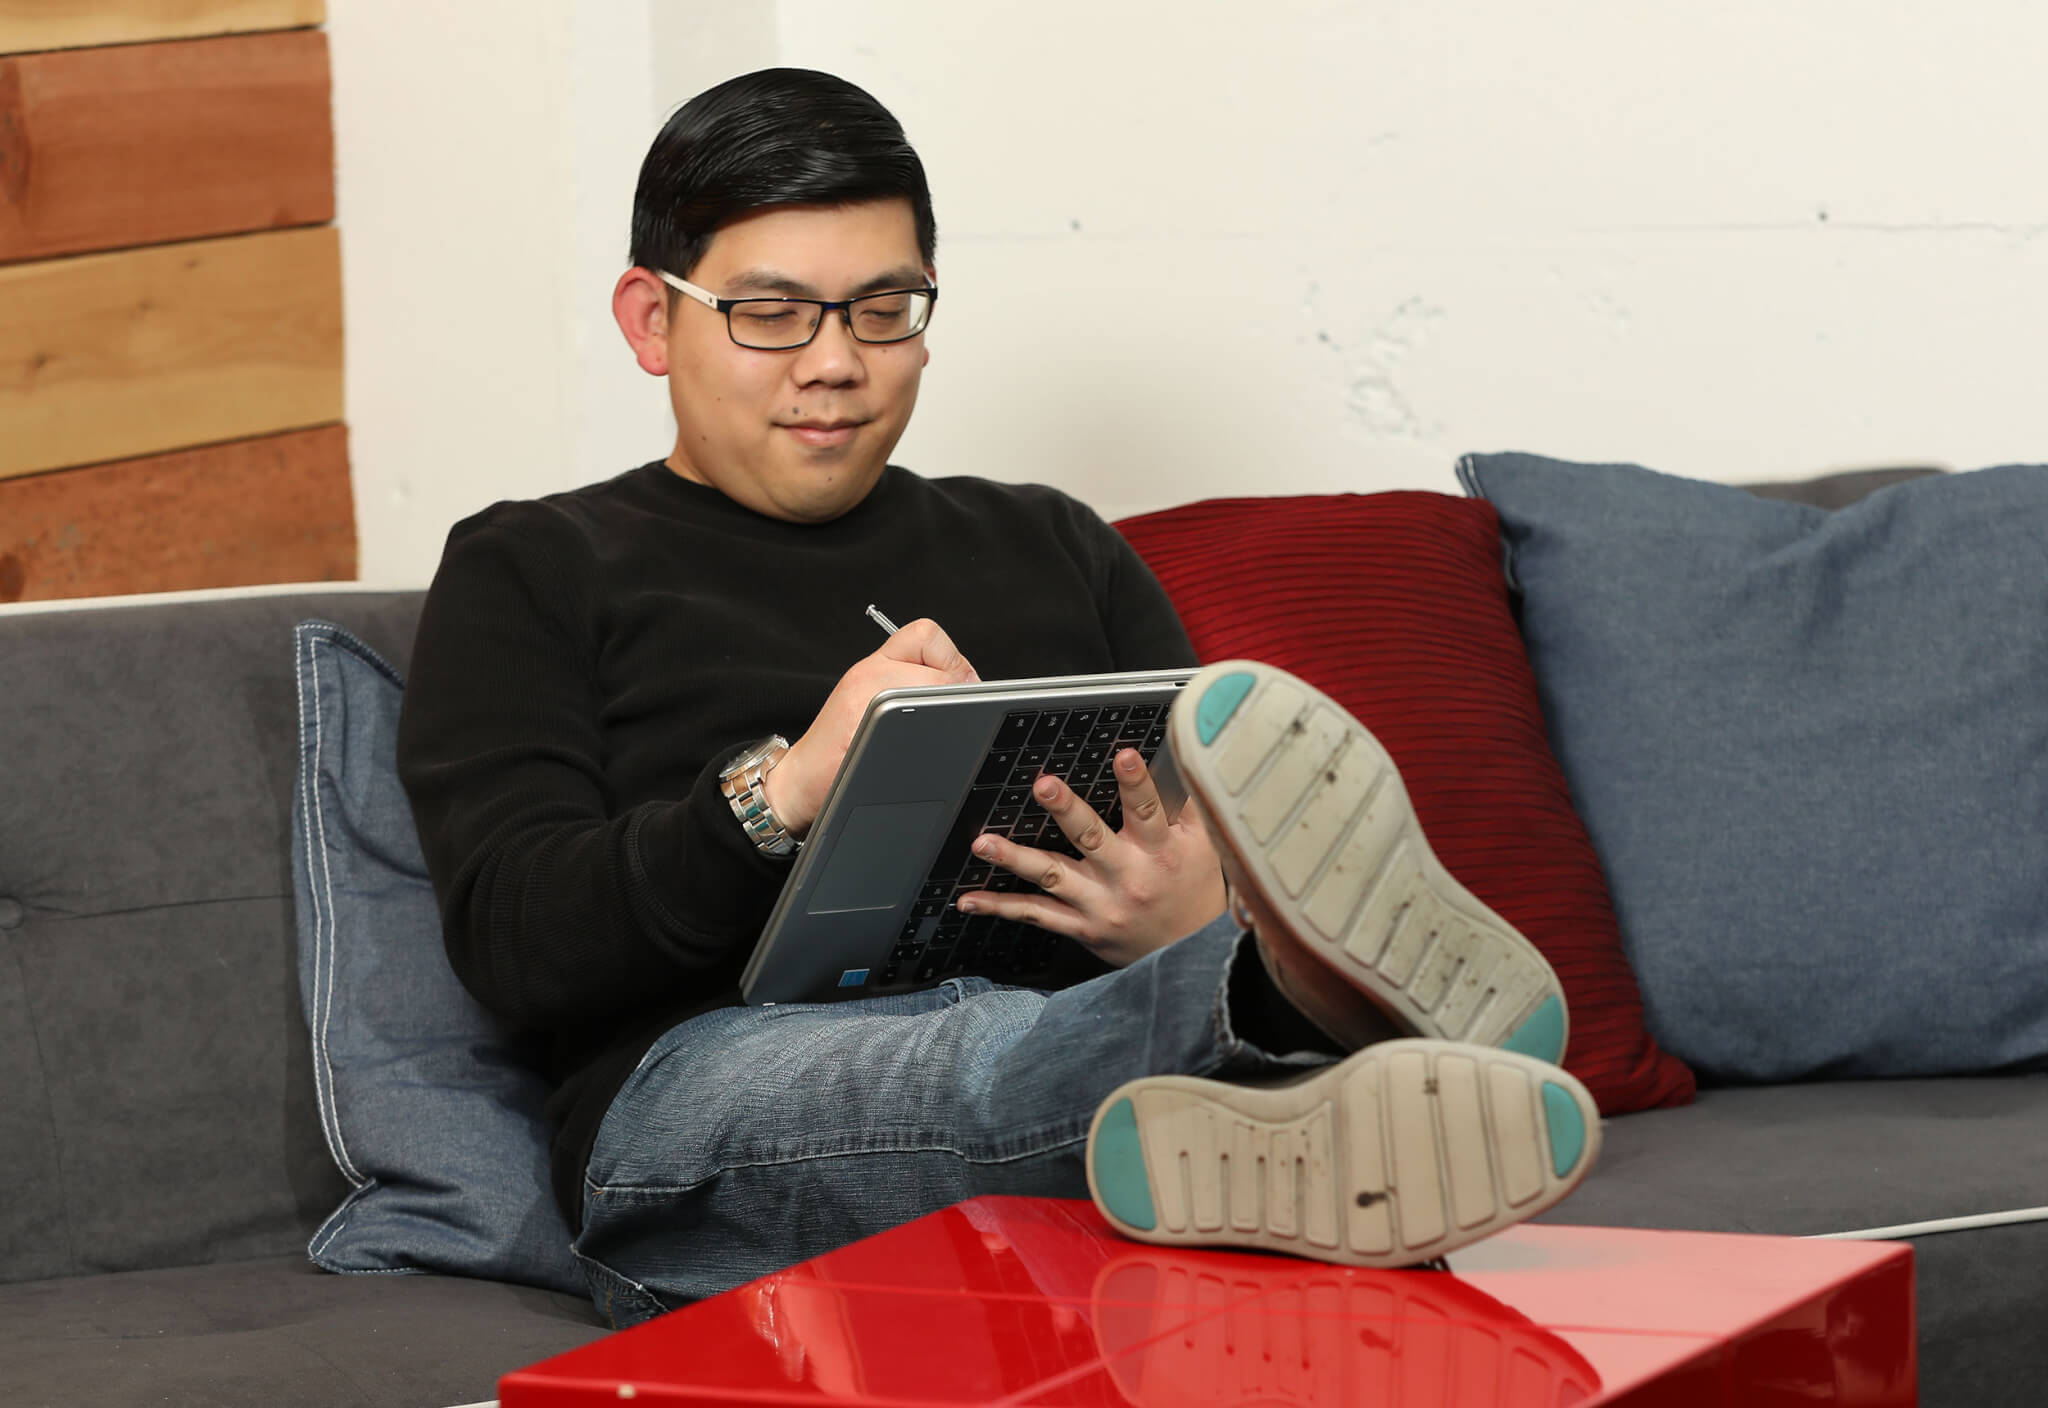 VentureBeat's Ken Yeung uses the Samsung Chromebook Pro in tablet mode.